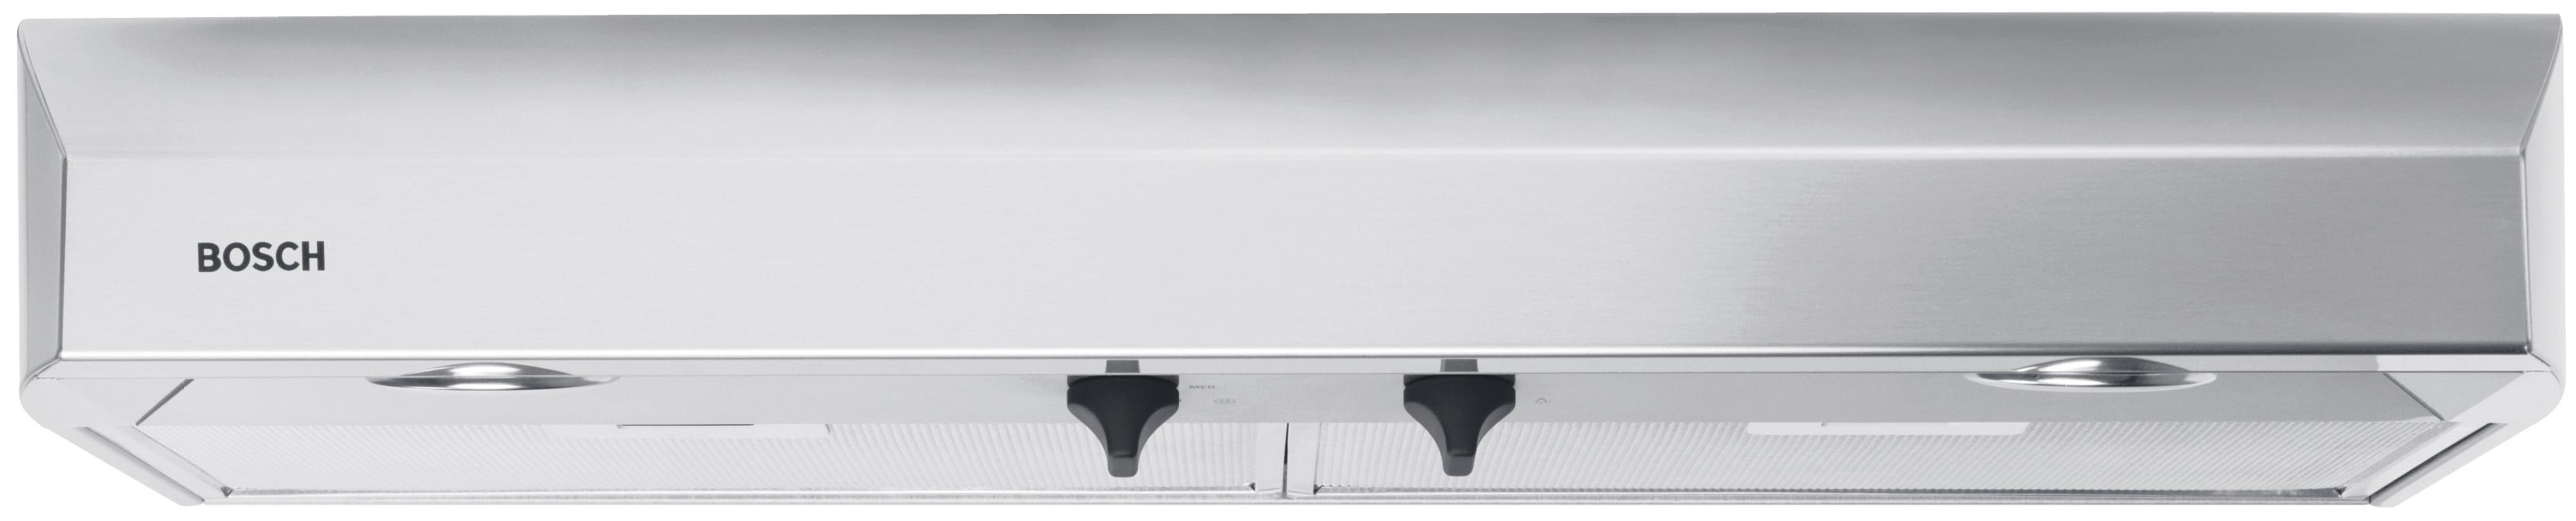 "Bosch Ventilation 30"" Under-the-Cabinet Range Hood - Item Number: DUH30252UC"